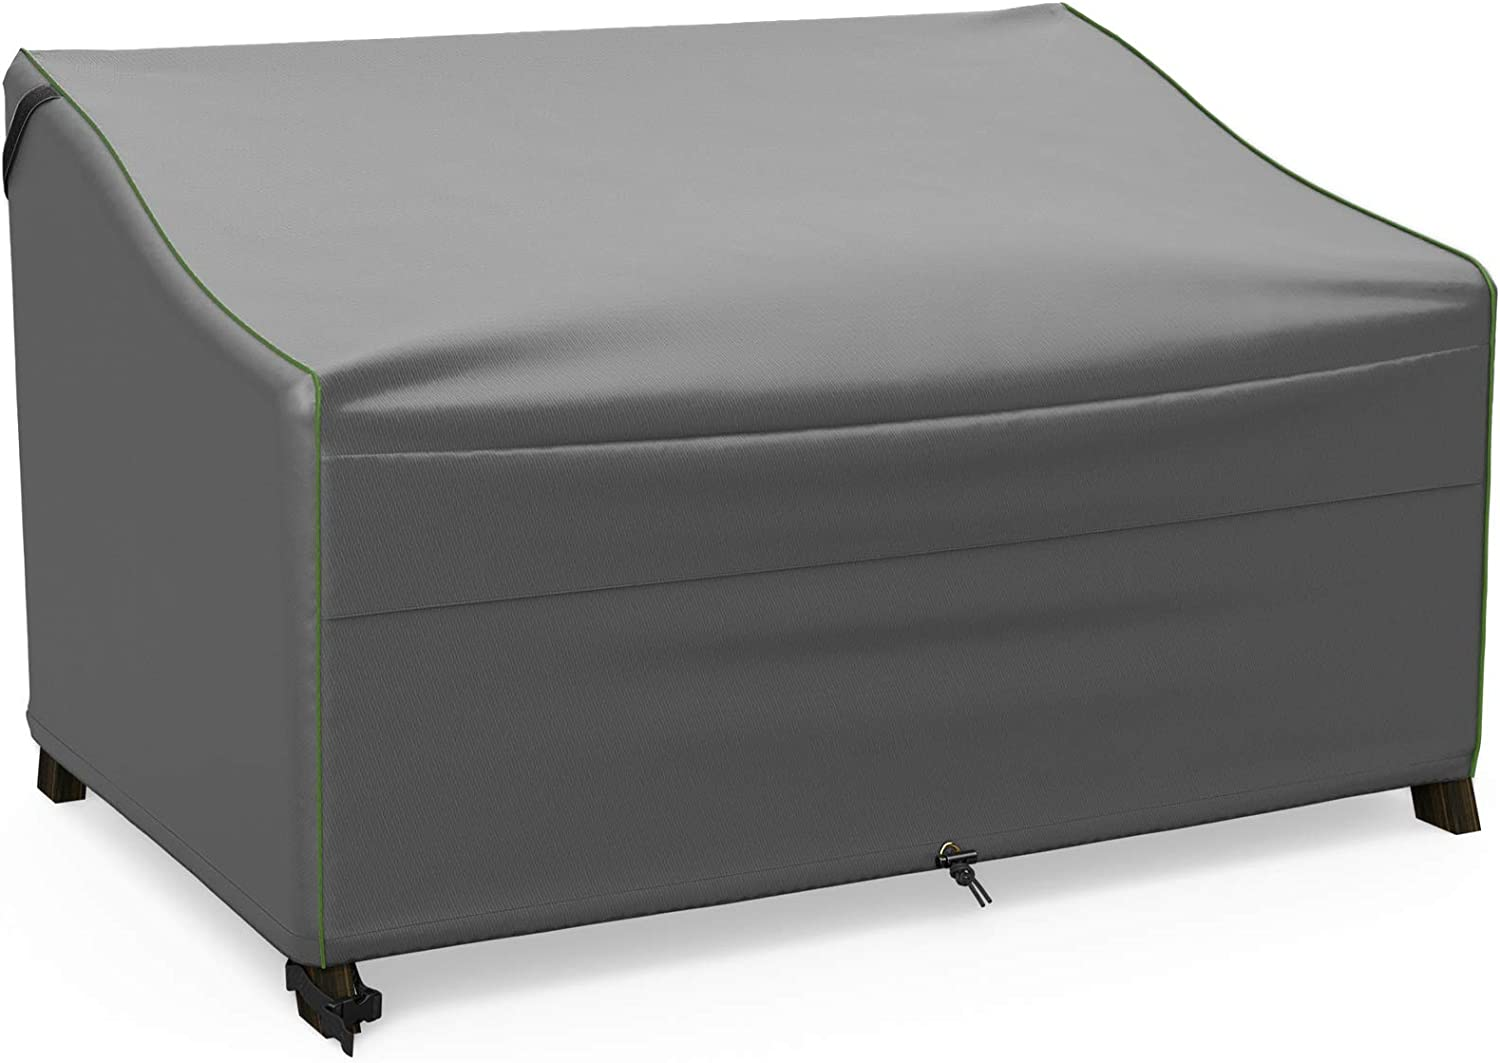 NUPICK Patio Sofa Cover, 58 Inch Outdoor Furniture Loveseat Cover, 100% Waterproof, Rip-Stop and Weather Resistant, Grey